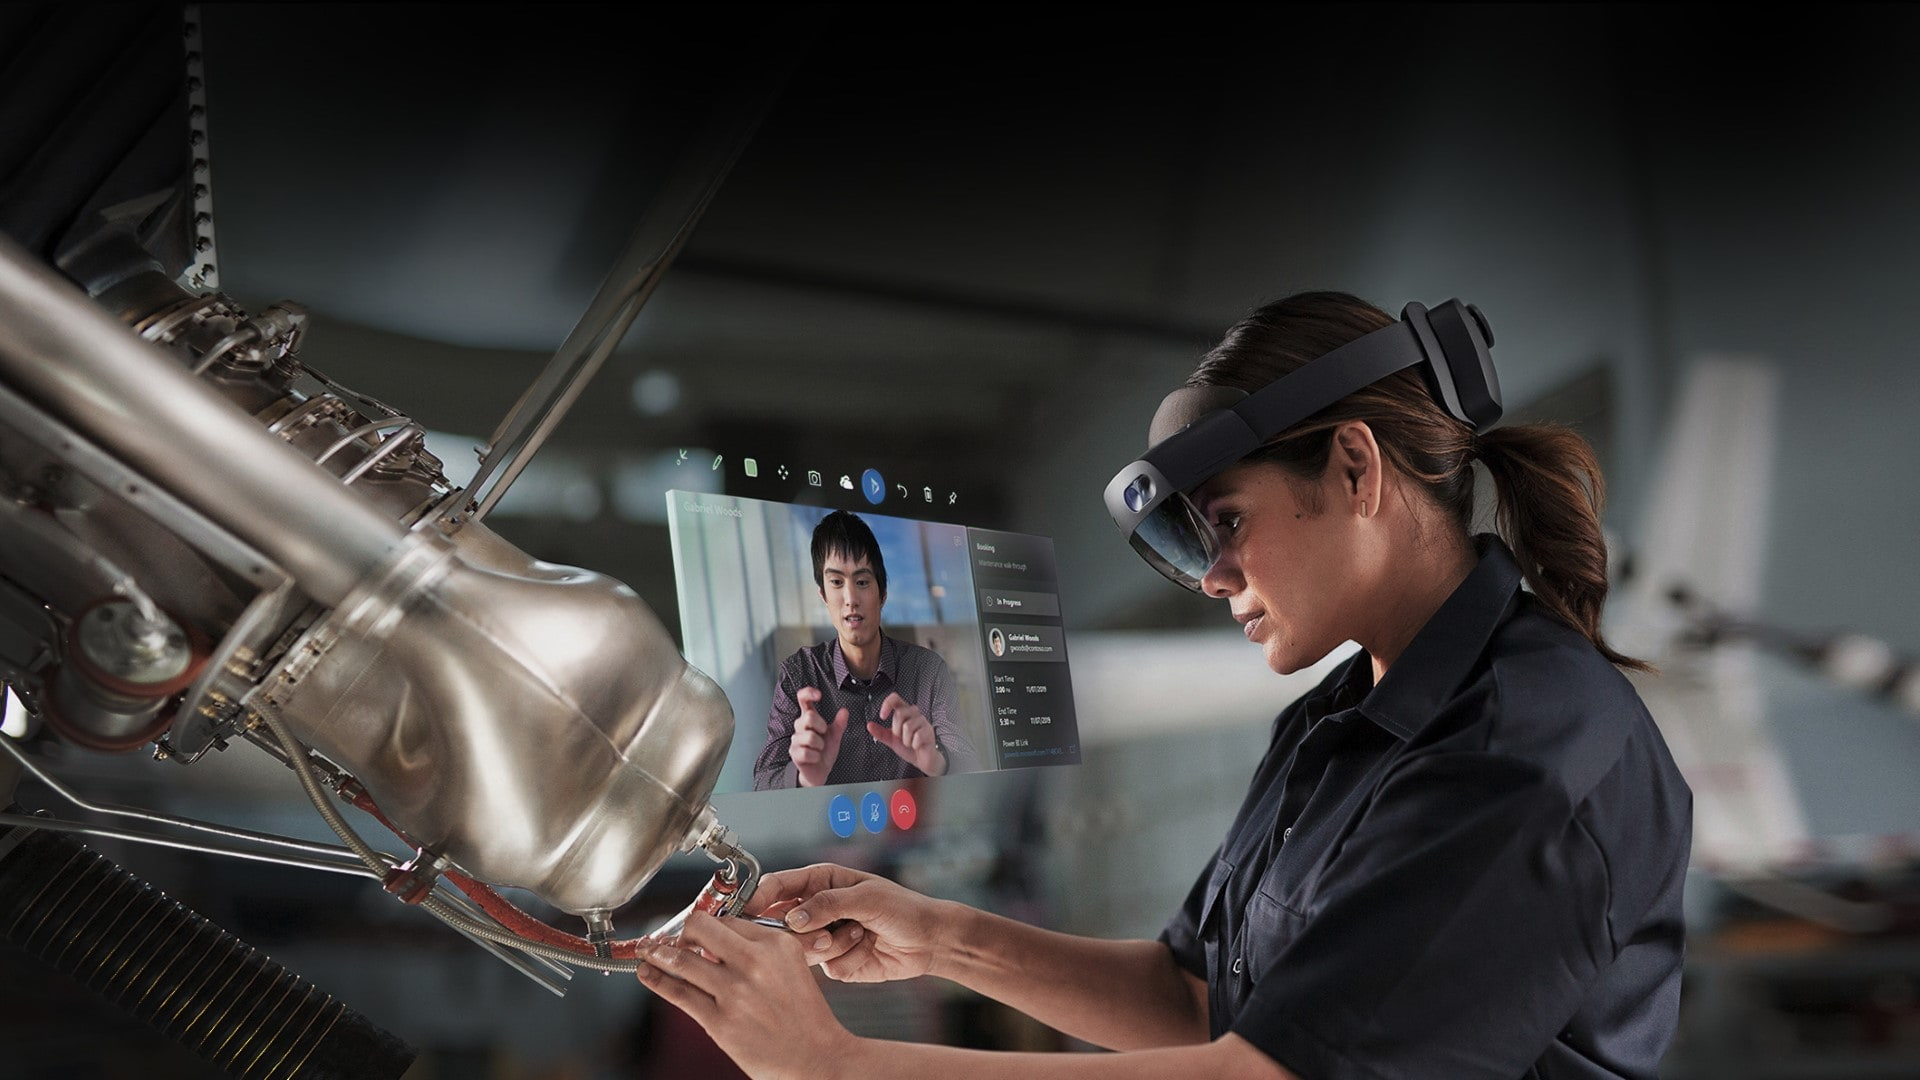 Opinion: Second gen HoloLens provides insights into edge computing models